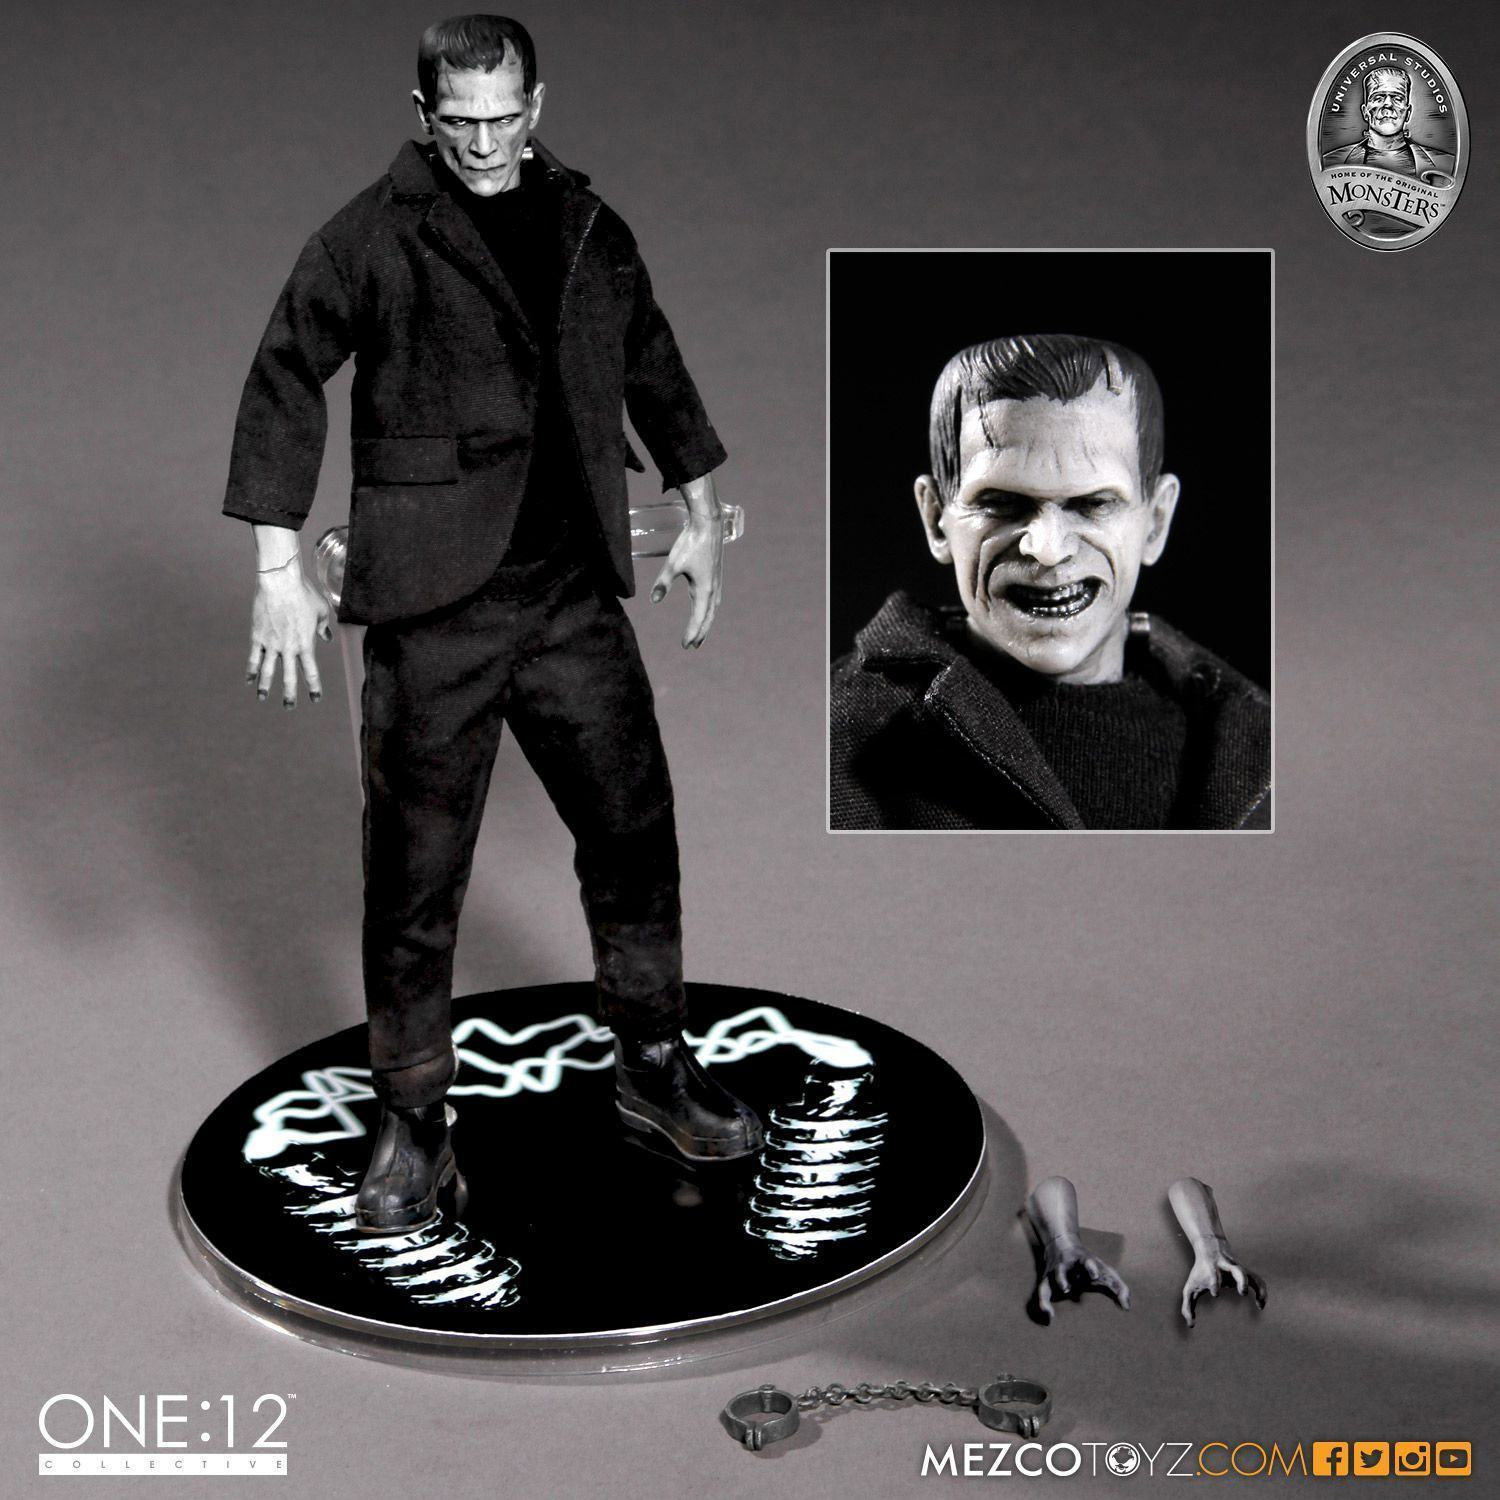 Universal-Monsters-Frankenstein-One12-Collective-Action-Figure-09